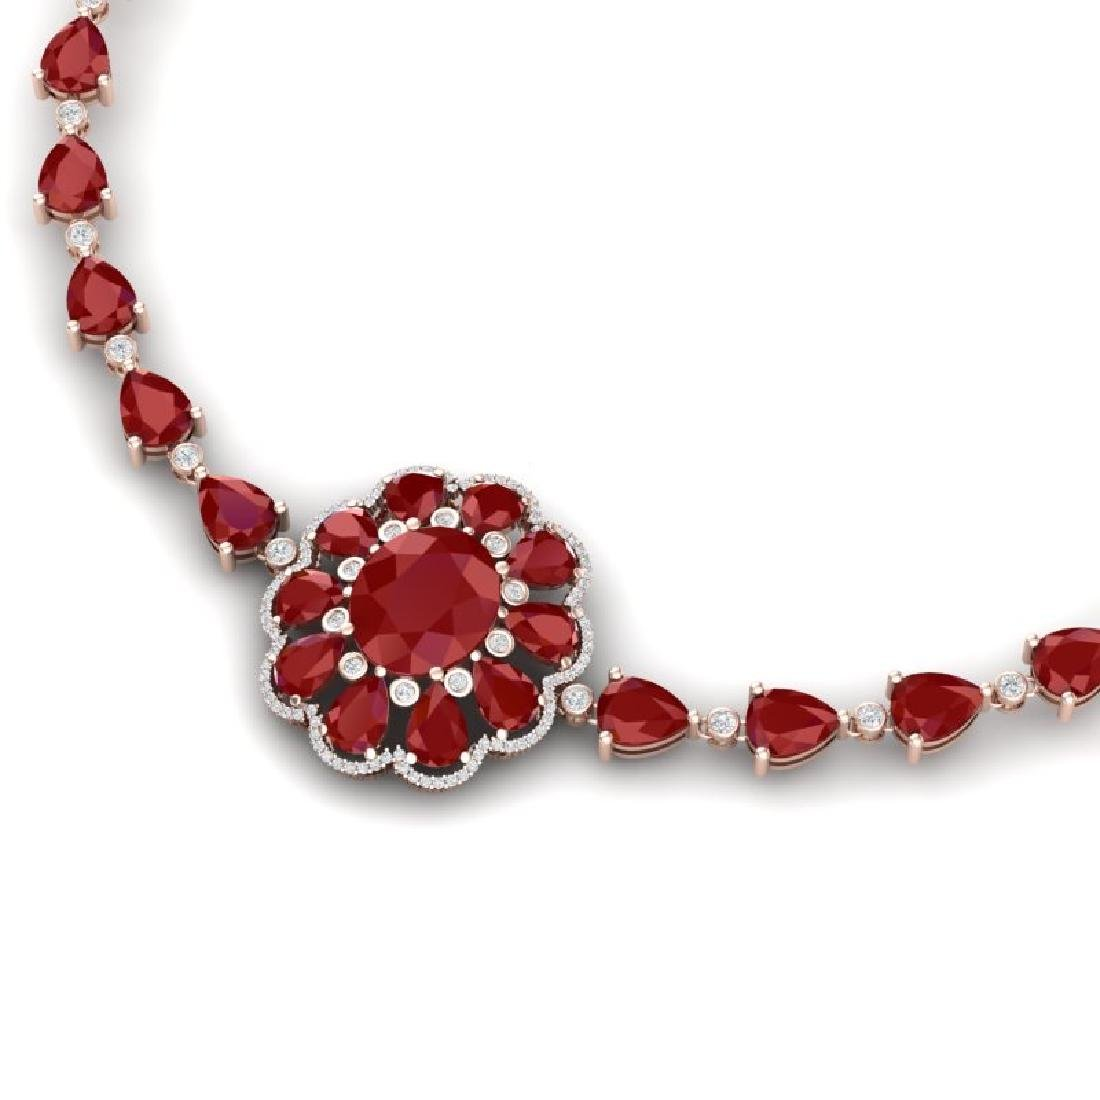 78.98 CTW Royalty Ruby & VS Diamond Necklace 18K Rose